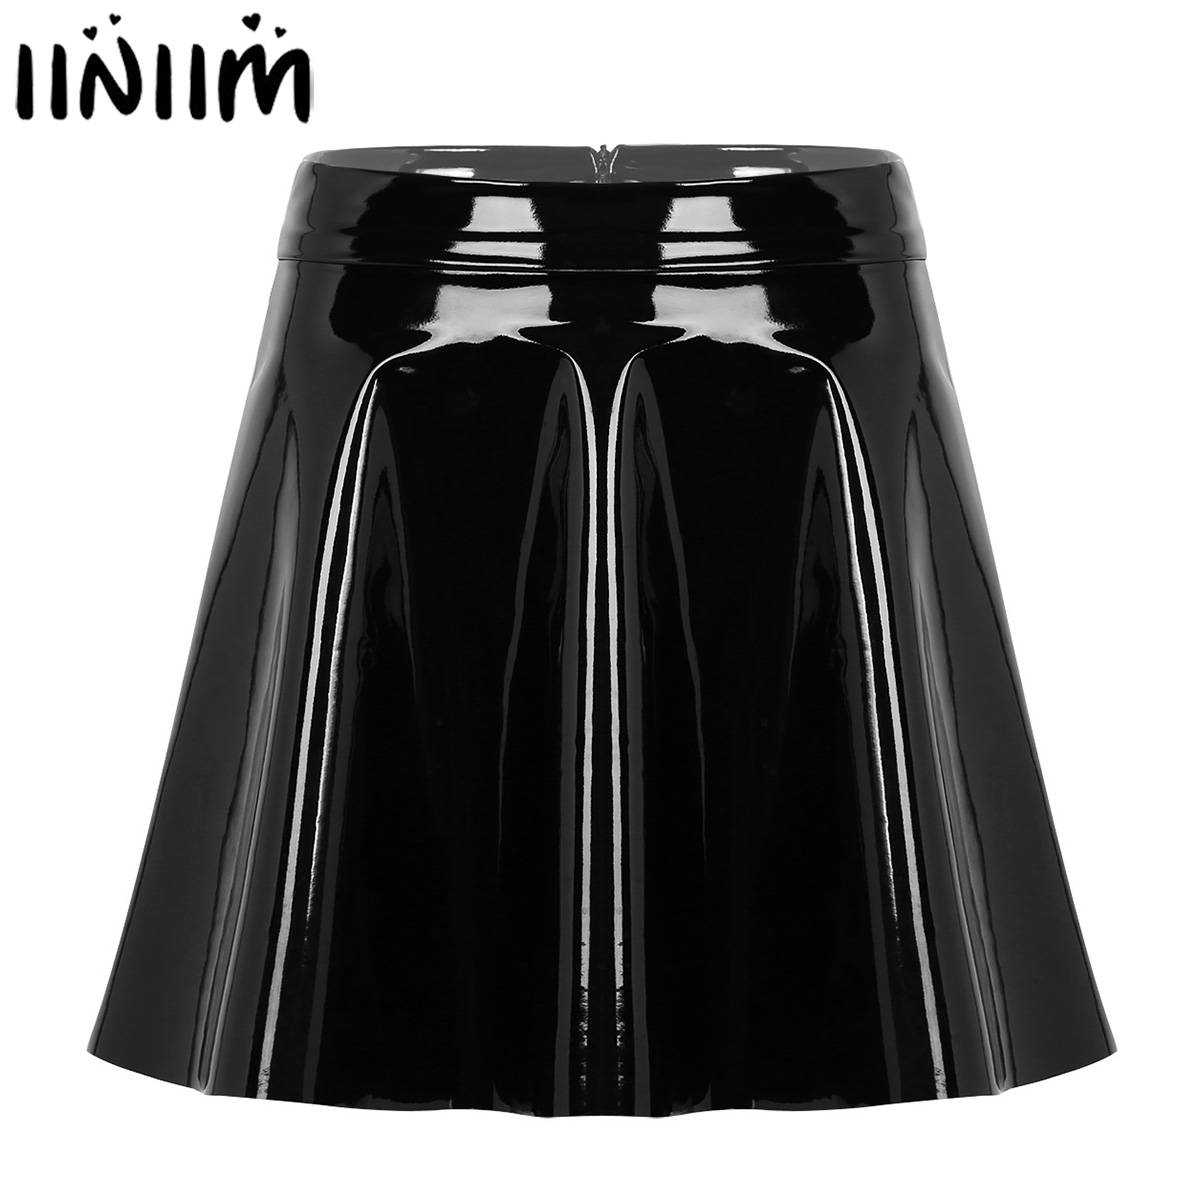 Womens Wetlook Mini Clubwear Sexy Pole Dance Costumes Leather High Waist Fashion Flared Pleated A-Line Circle Mini Skater Skirt